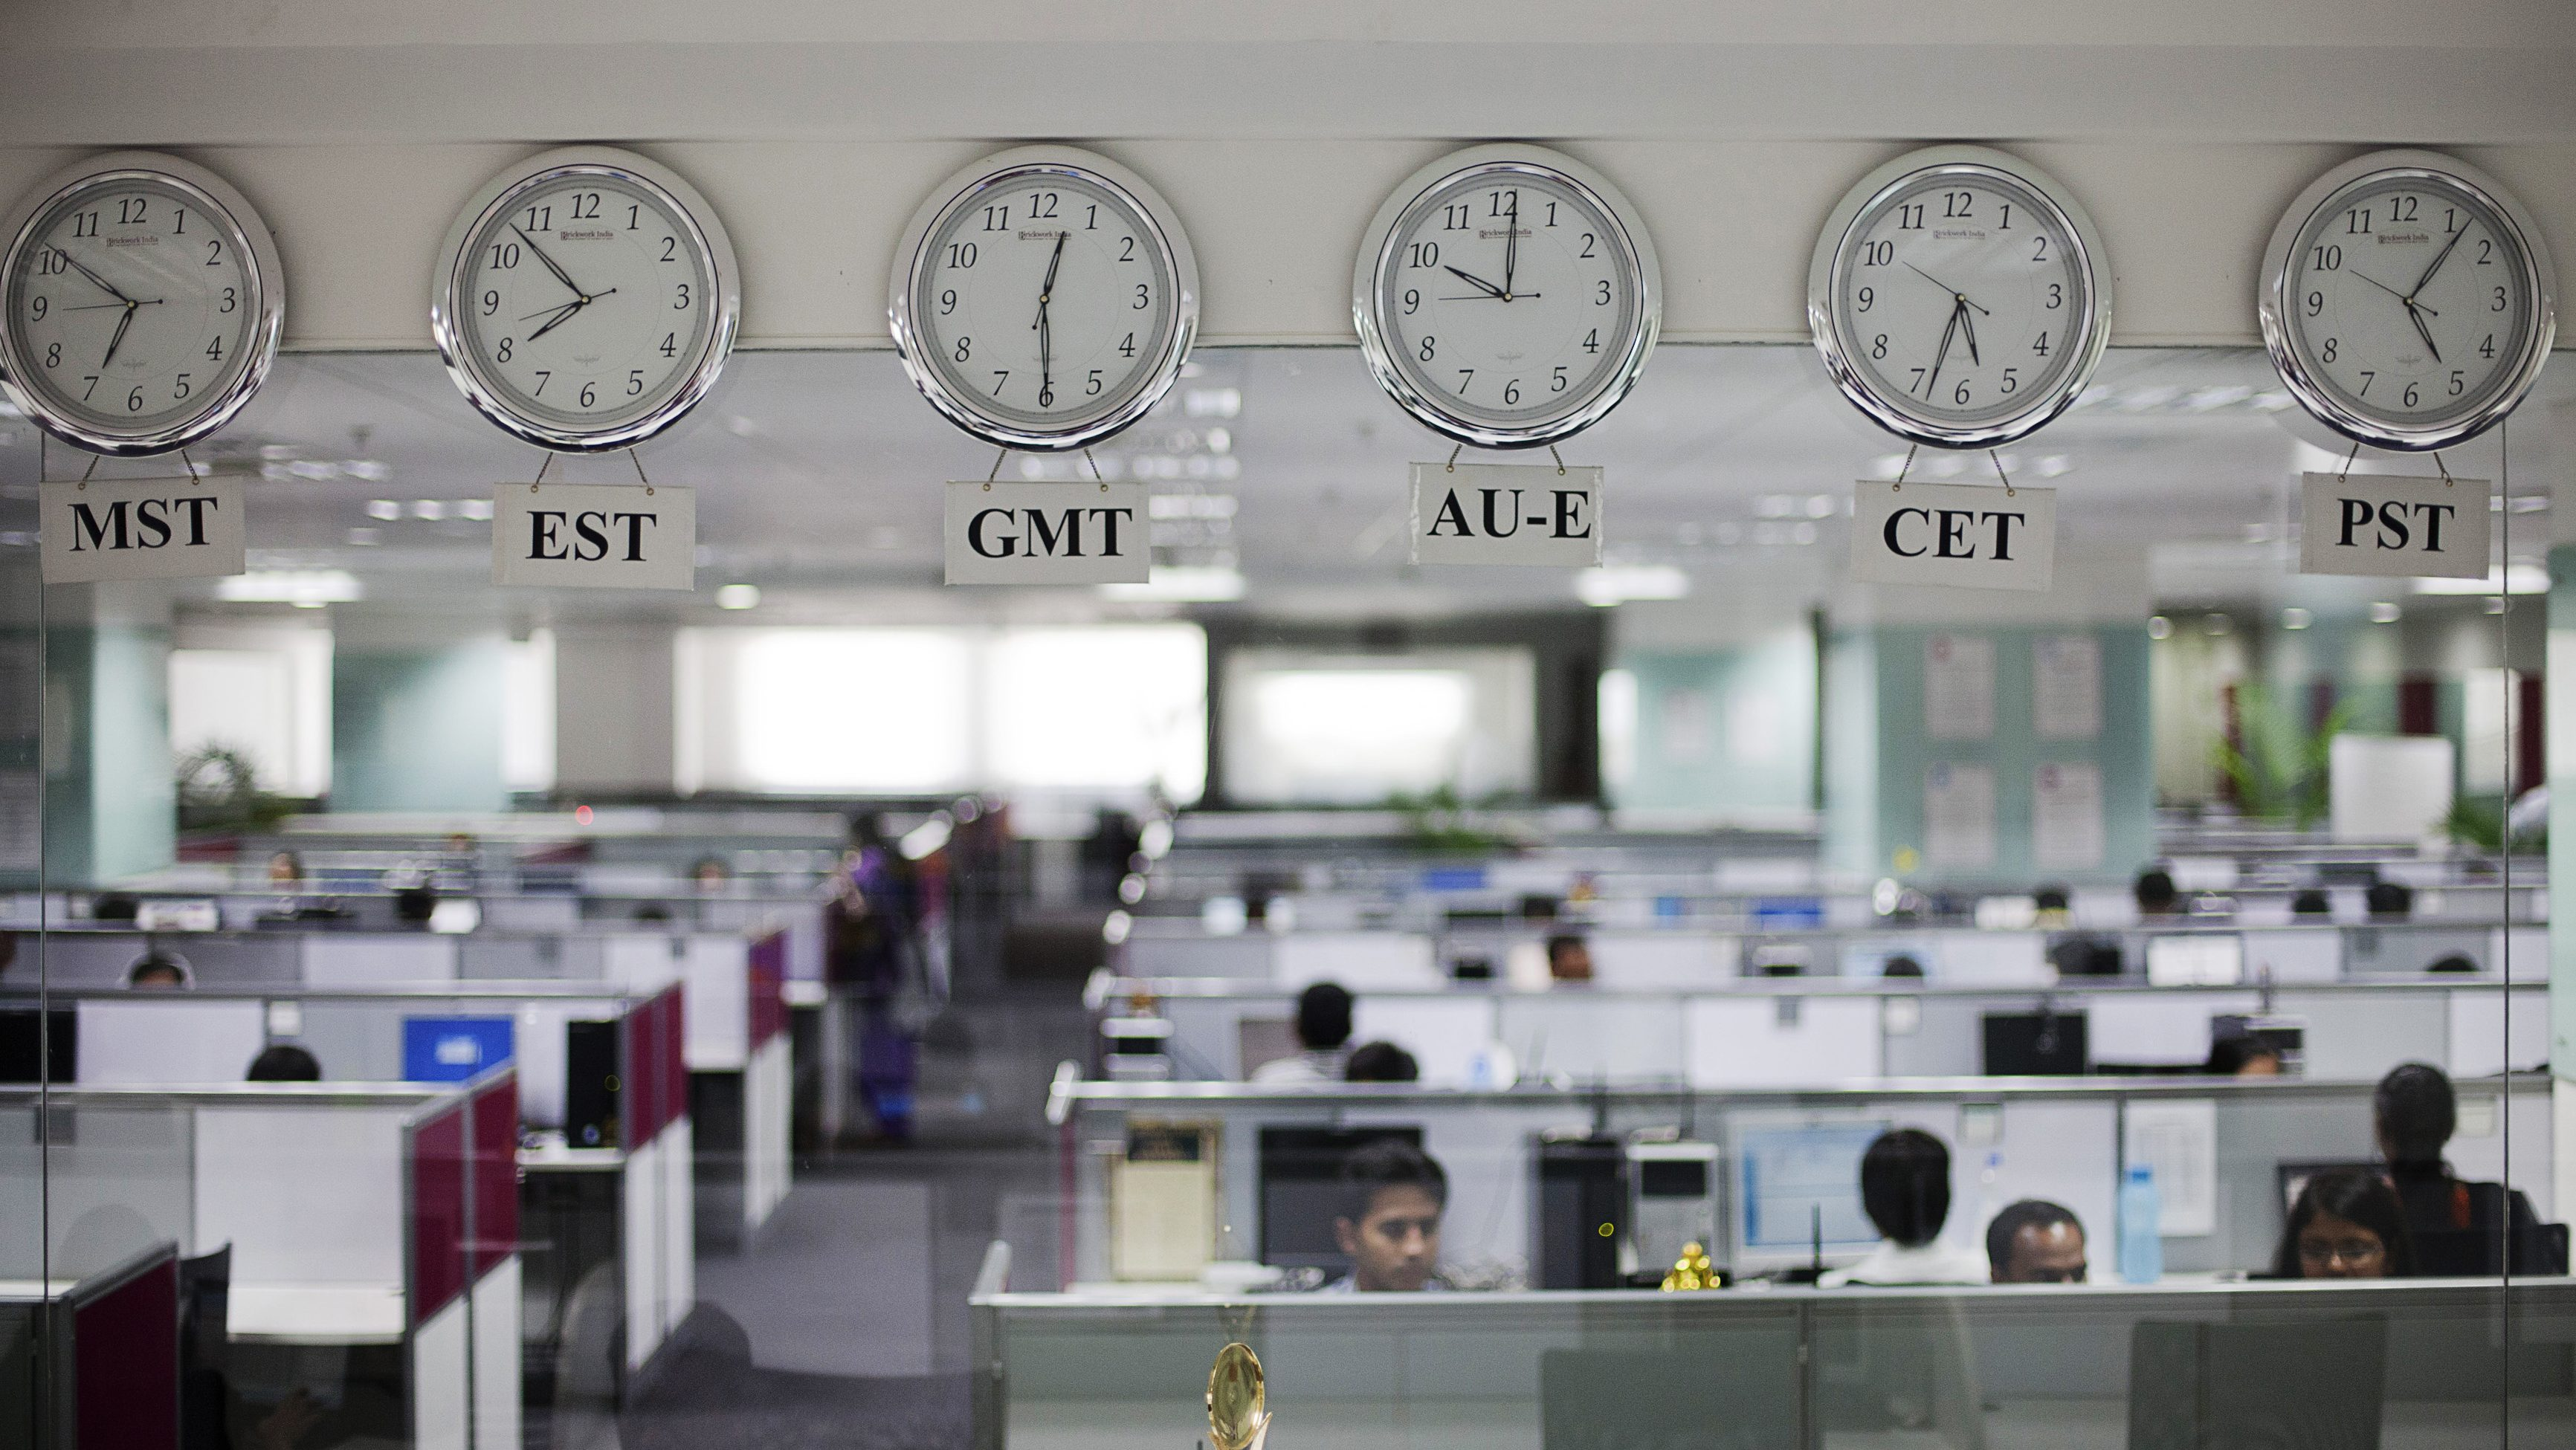 Workers are pictured beneath clocks displaying time zones in various parts of the world at an outsourcing centre in Bangalore February 29, 2012. The business of storing, decoding and analysing unstructured data - think video, Facebook updates, Tweets, Internet searches and public cameras - along with mountains of facts and figures can help companies increase profits, cut costs and improve service, and is now one of the world's hottest industries. It's called Big Data, and although much of the work is done in the United States, India is getting an increasing slice of the action, re-energising an IT sector whose growth has begun to falter. Picture taken February 29, 2012.